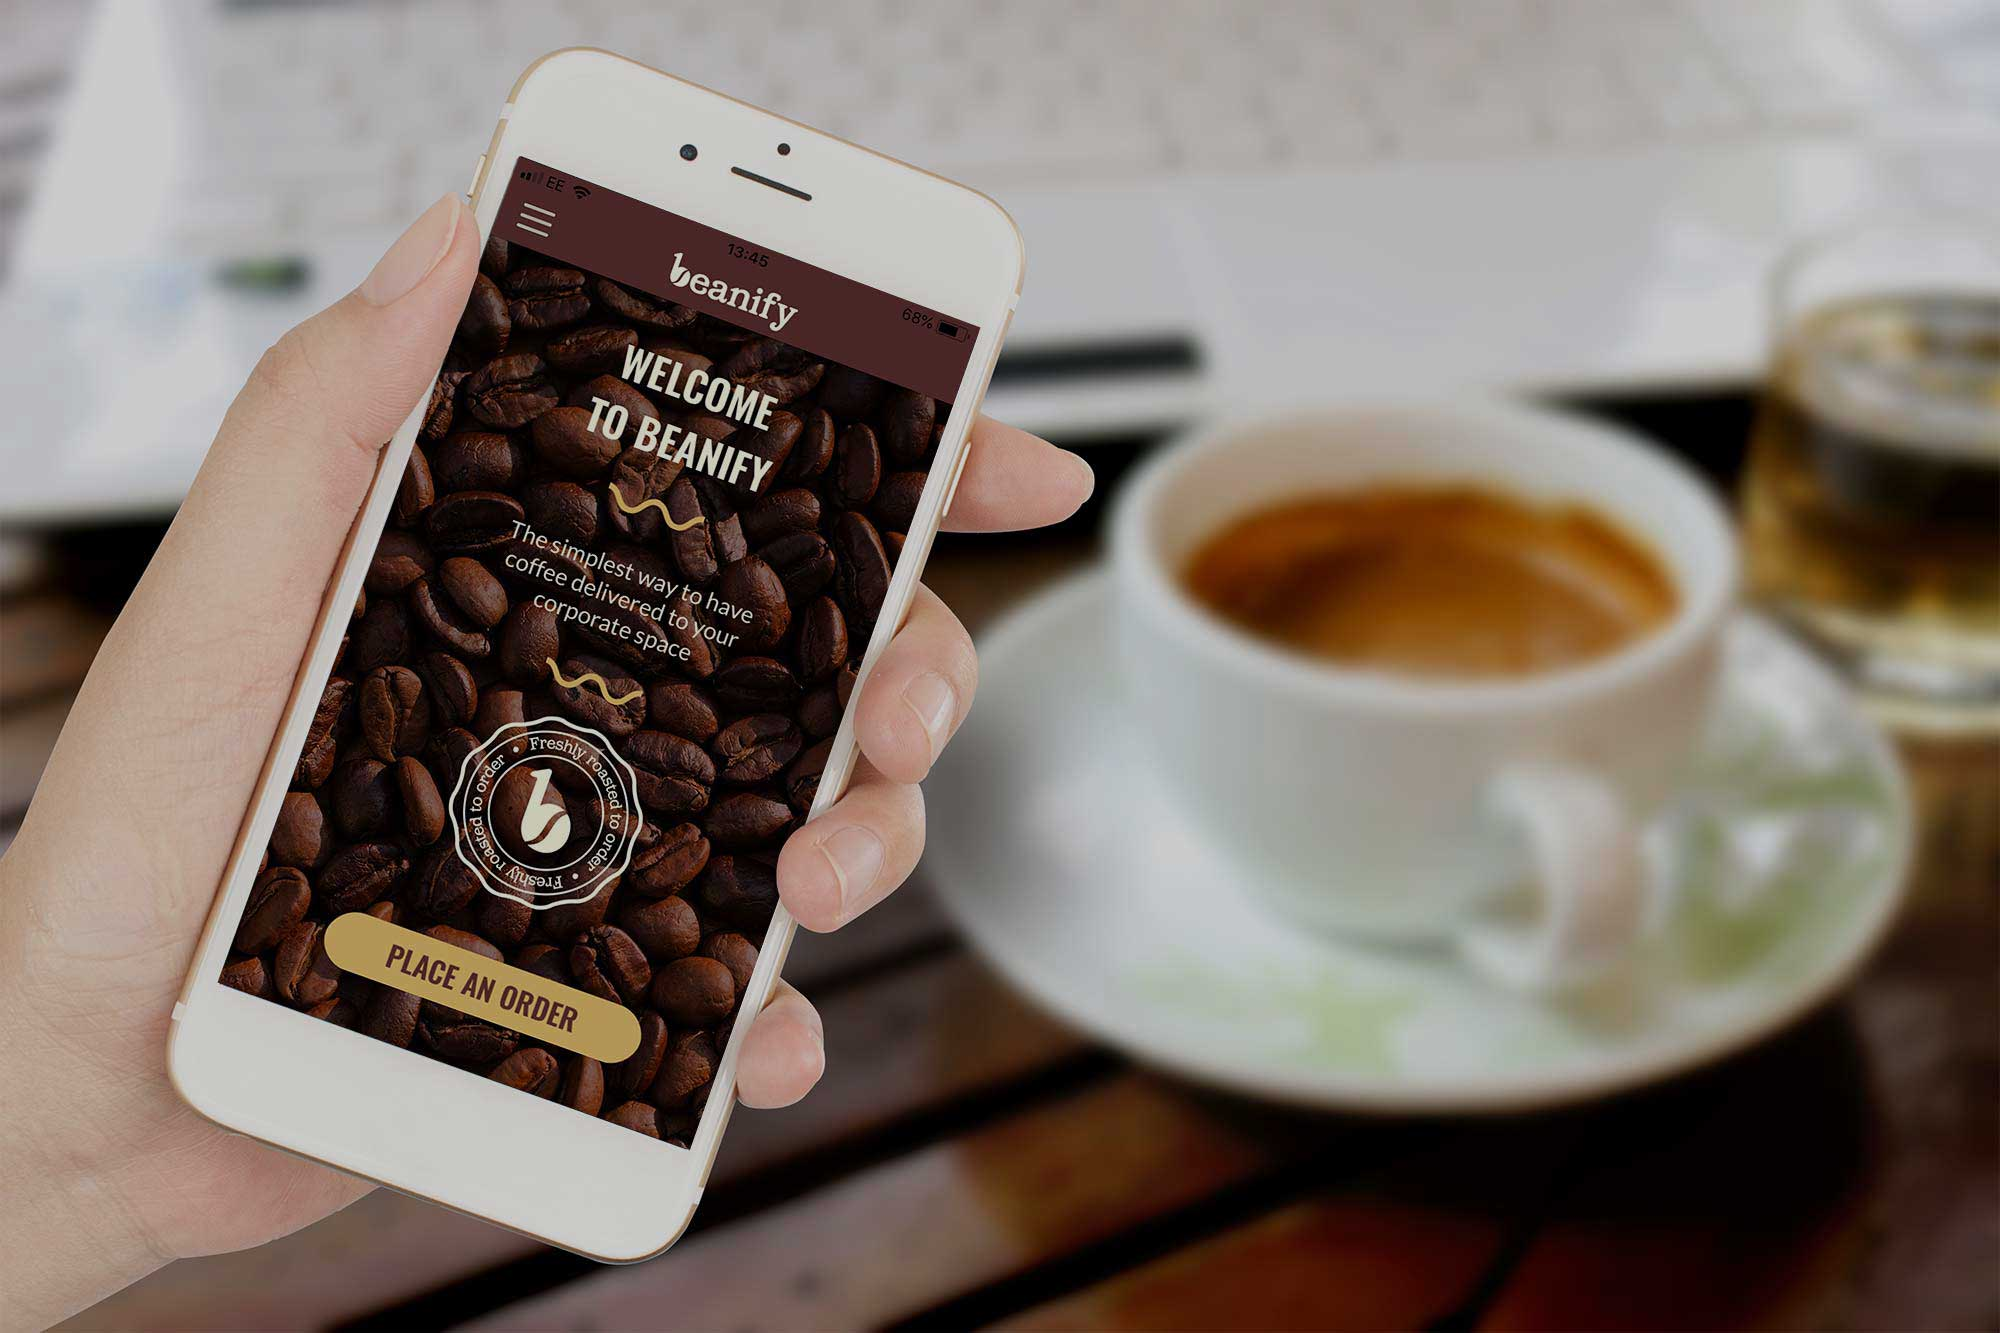 app to order coffee to businesses